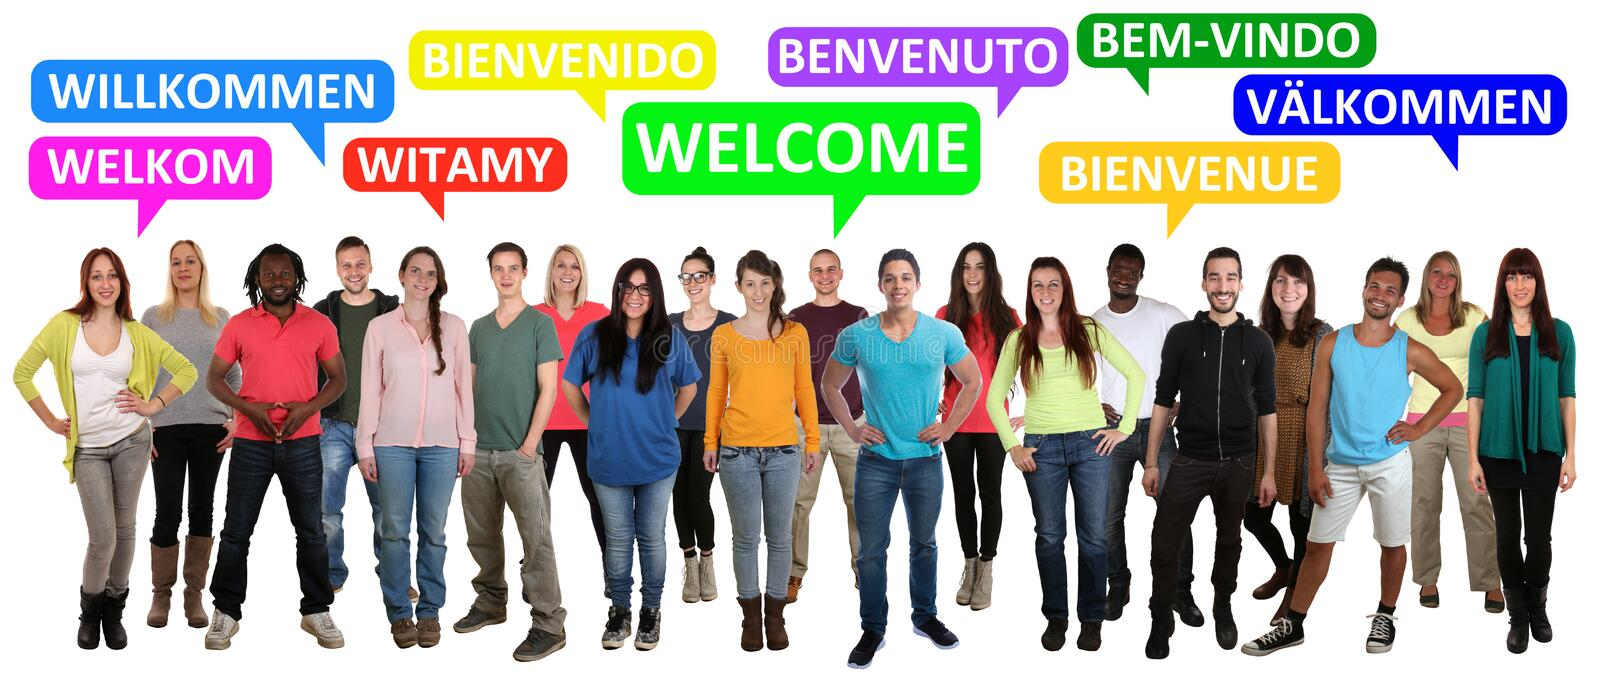 Welcome multi ethnic group of smiling young people saying refuge stock photo